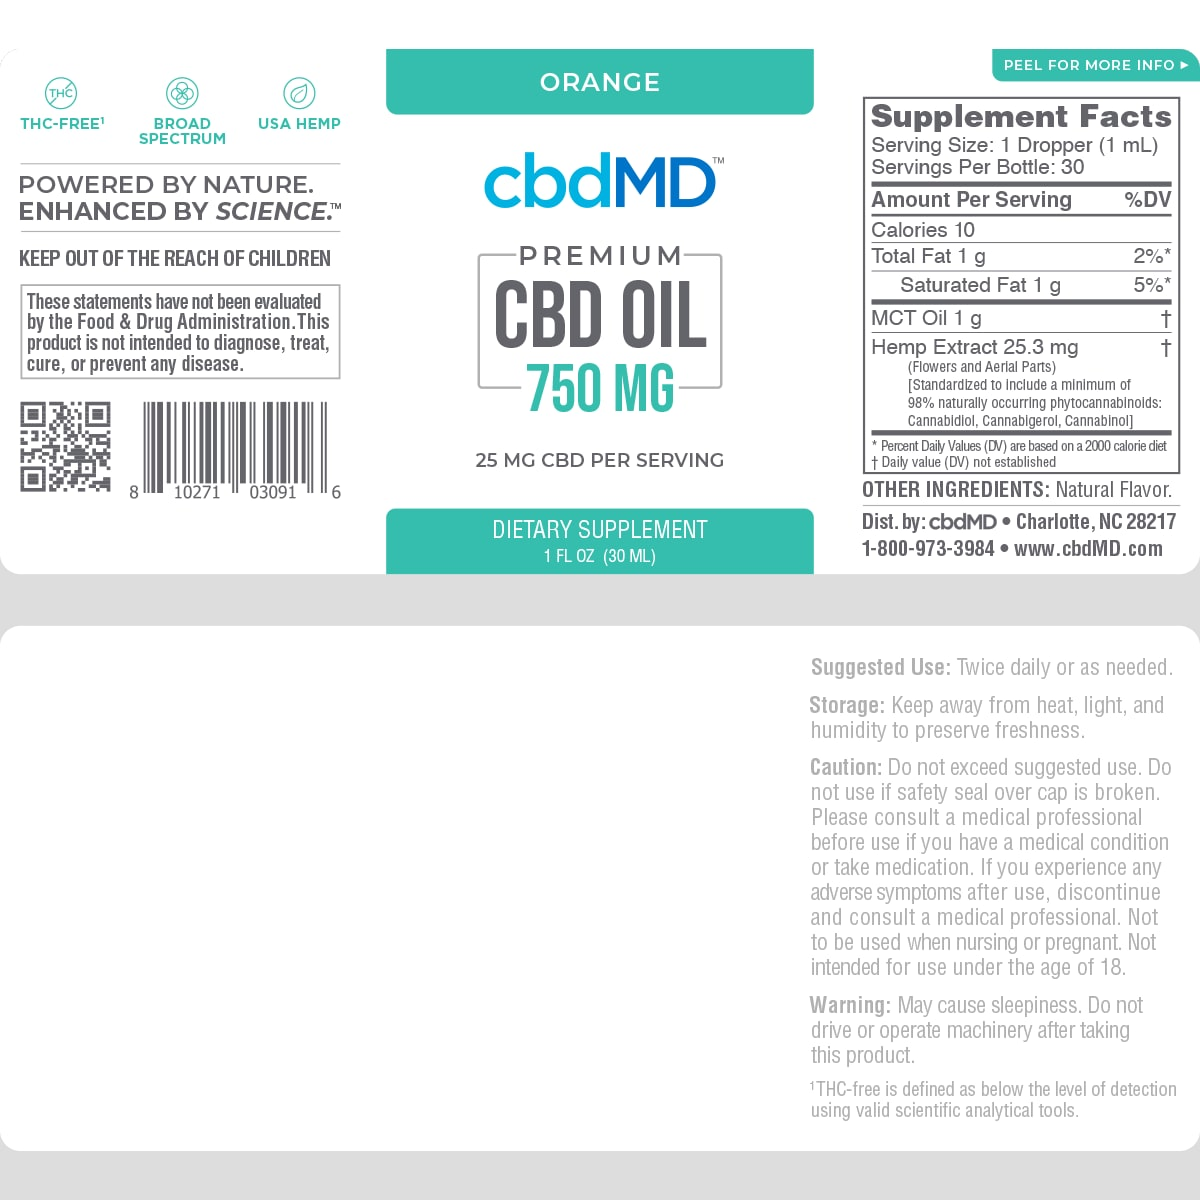 cbdMD, CBD Oil Tincture, Broad Spectrum THC-Free, Orange, 1oz, 750mg of CBD2